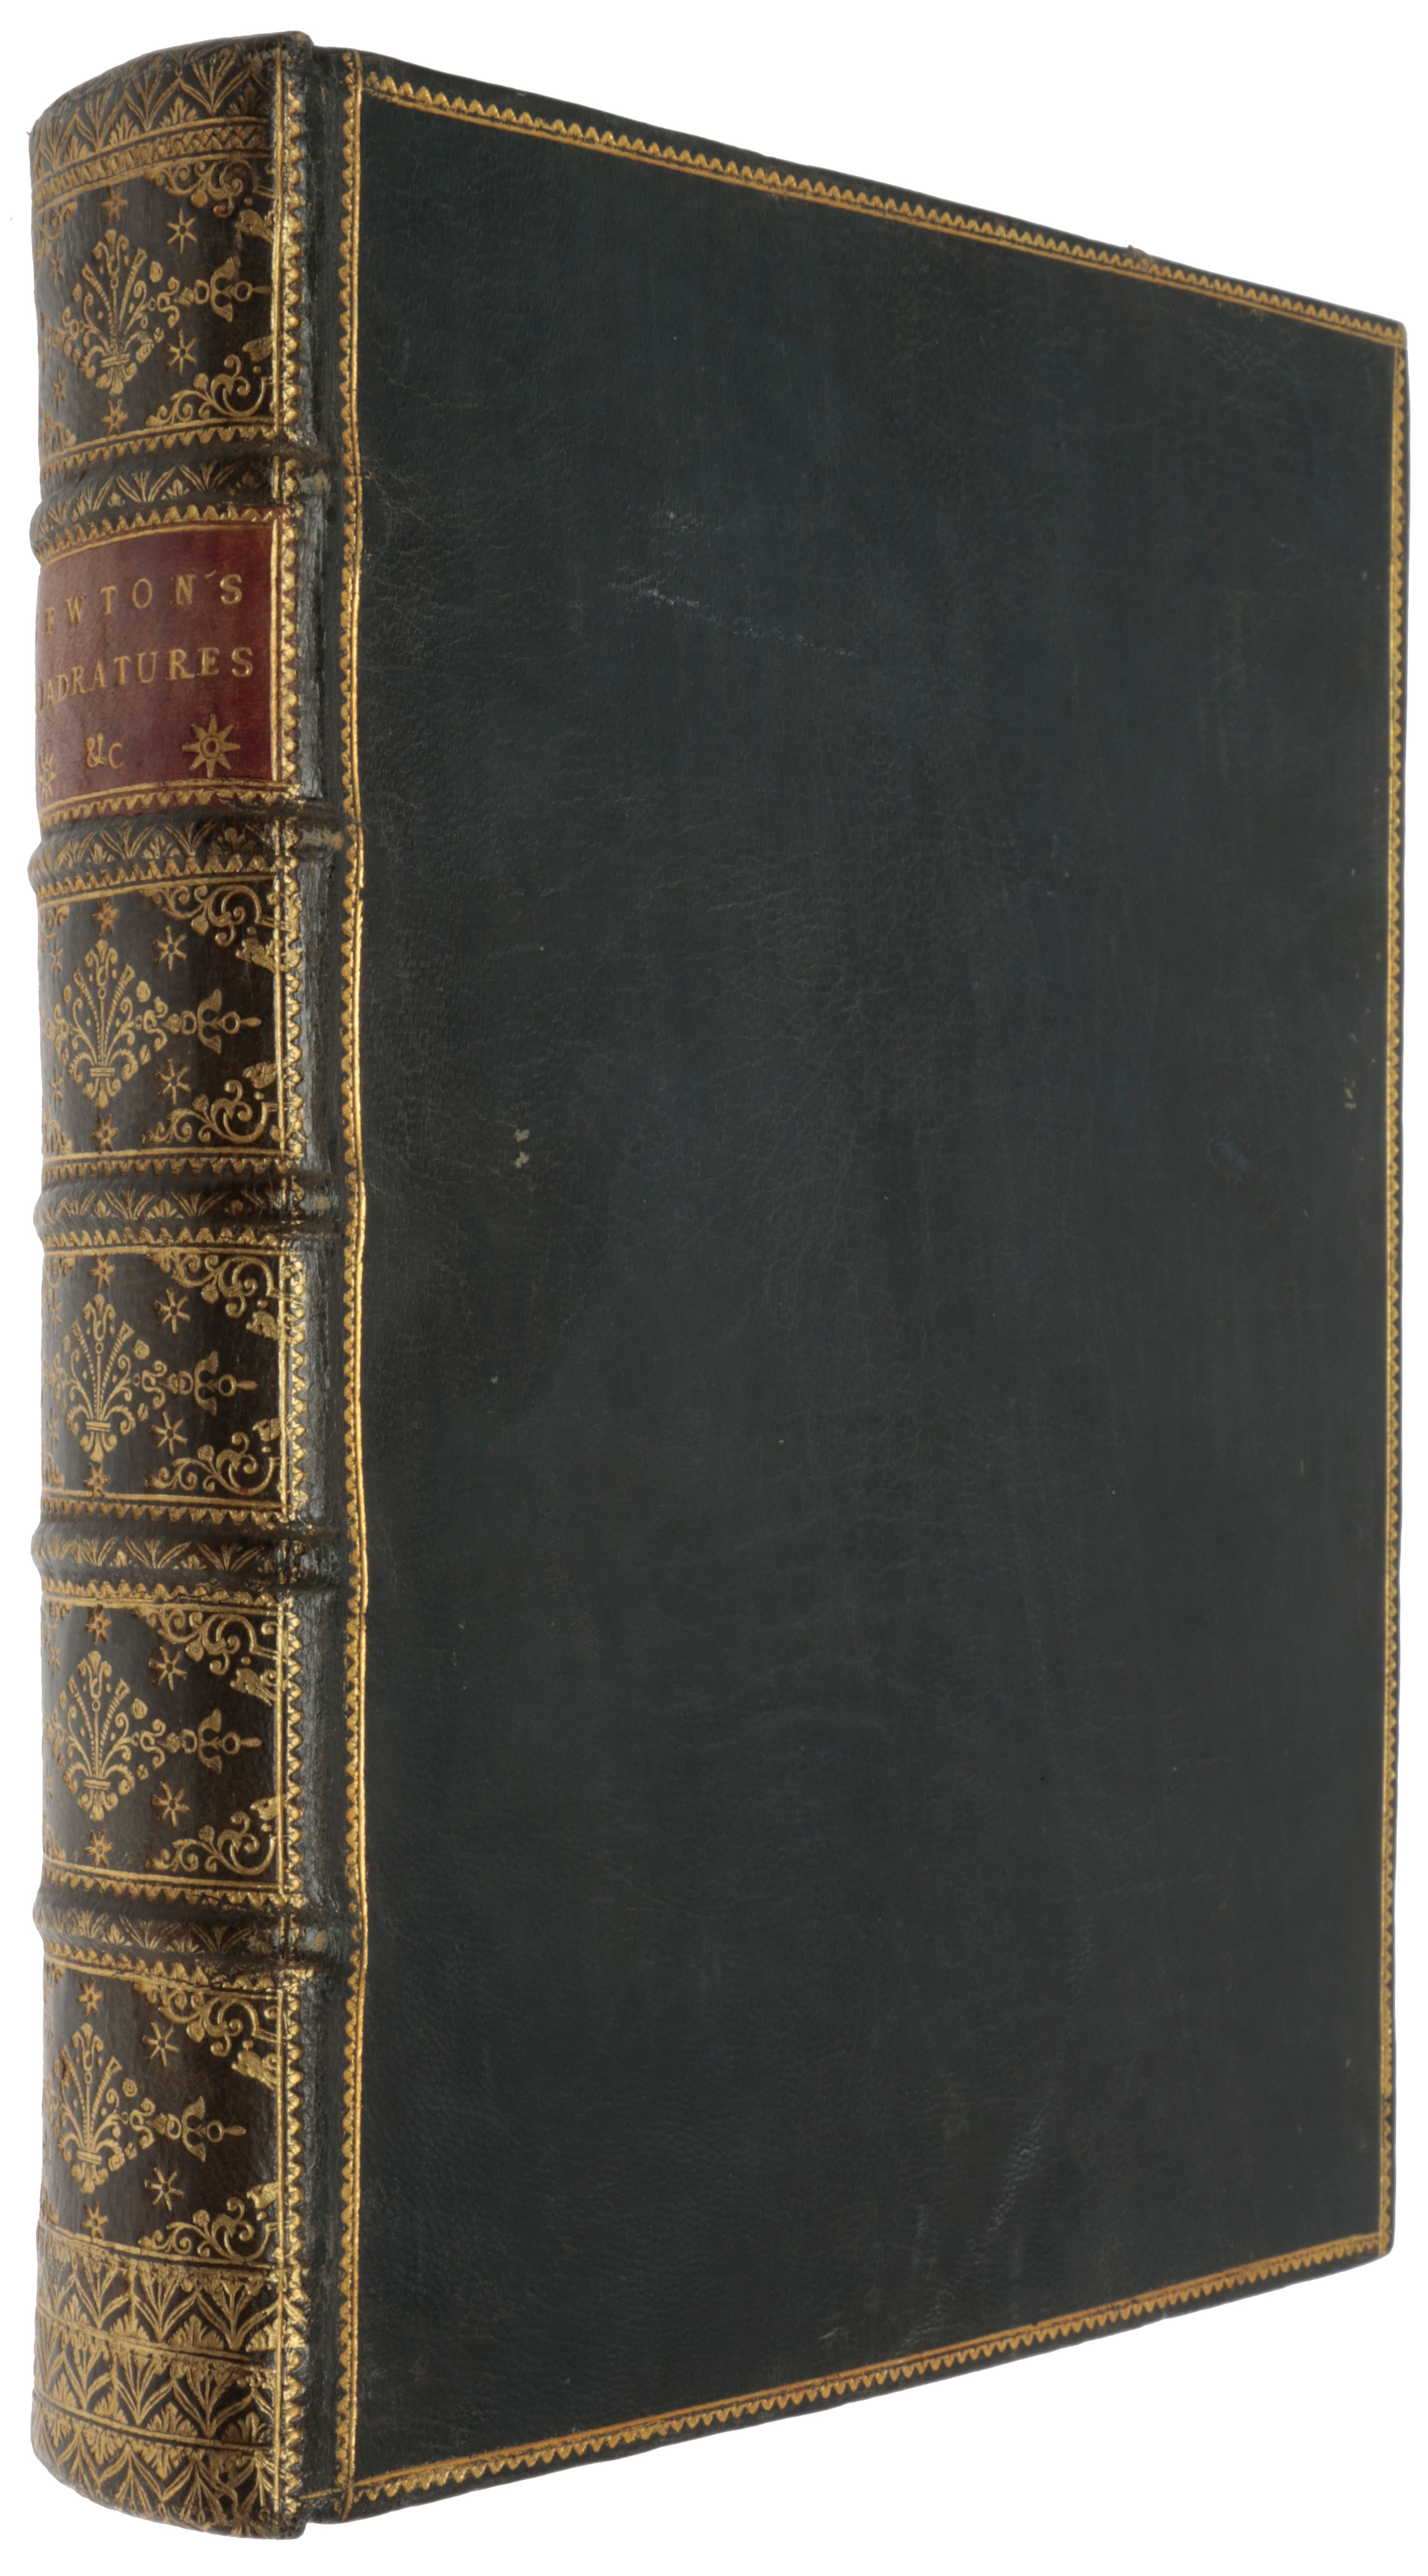 Two Treatises of the Quadrature of Curves, and Analysis by Equations of an infinite Number of Terms, explained: Containing The Treatises themselves, translated into English, with a large Commentary; in which the Demonstrations are supplied where wanting, the Doctrine illustrated, and the whole accommodated to the Capacities of Beginners, for whom it is chiefly designed. Sir Isaac NEWTON, John STEWART.